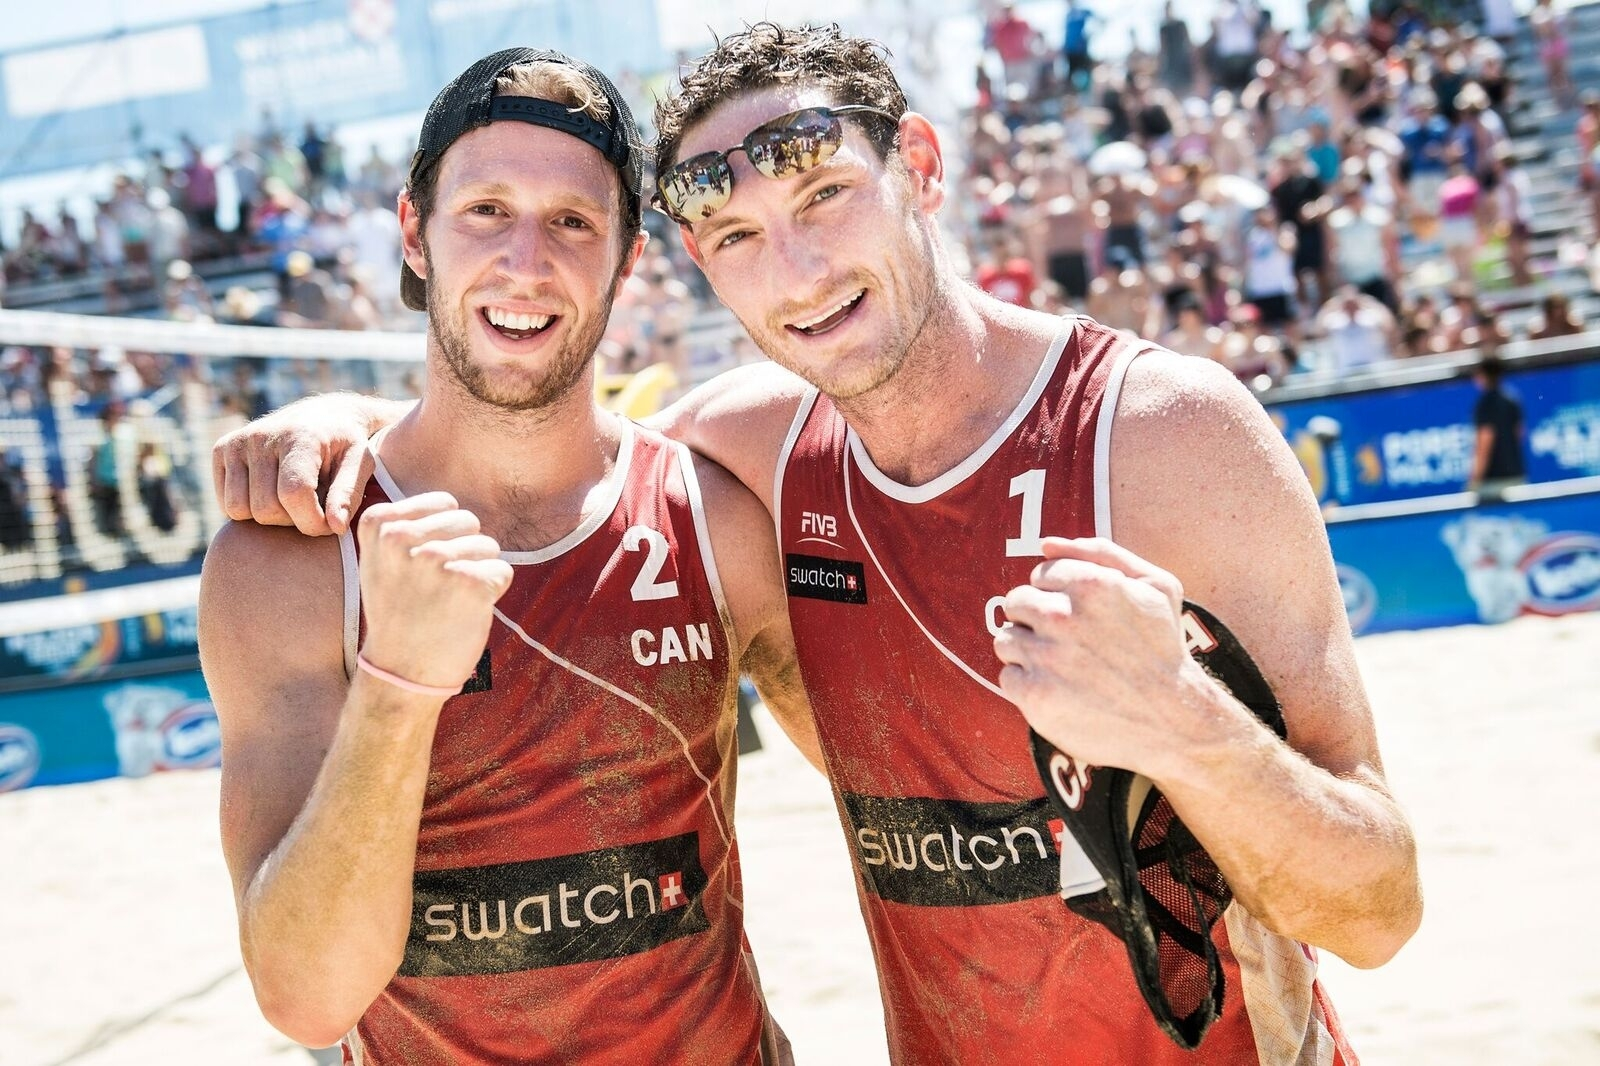 Four attempts, one Olympic spot for Sam Schachter (left) and Josh Binstock. Photocredit: Joerg Mitter.